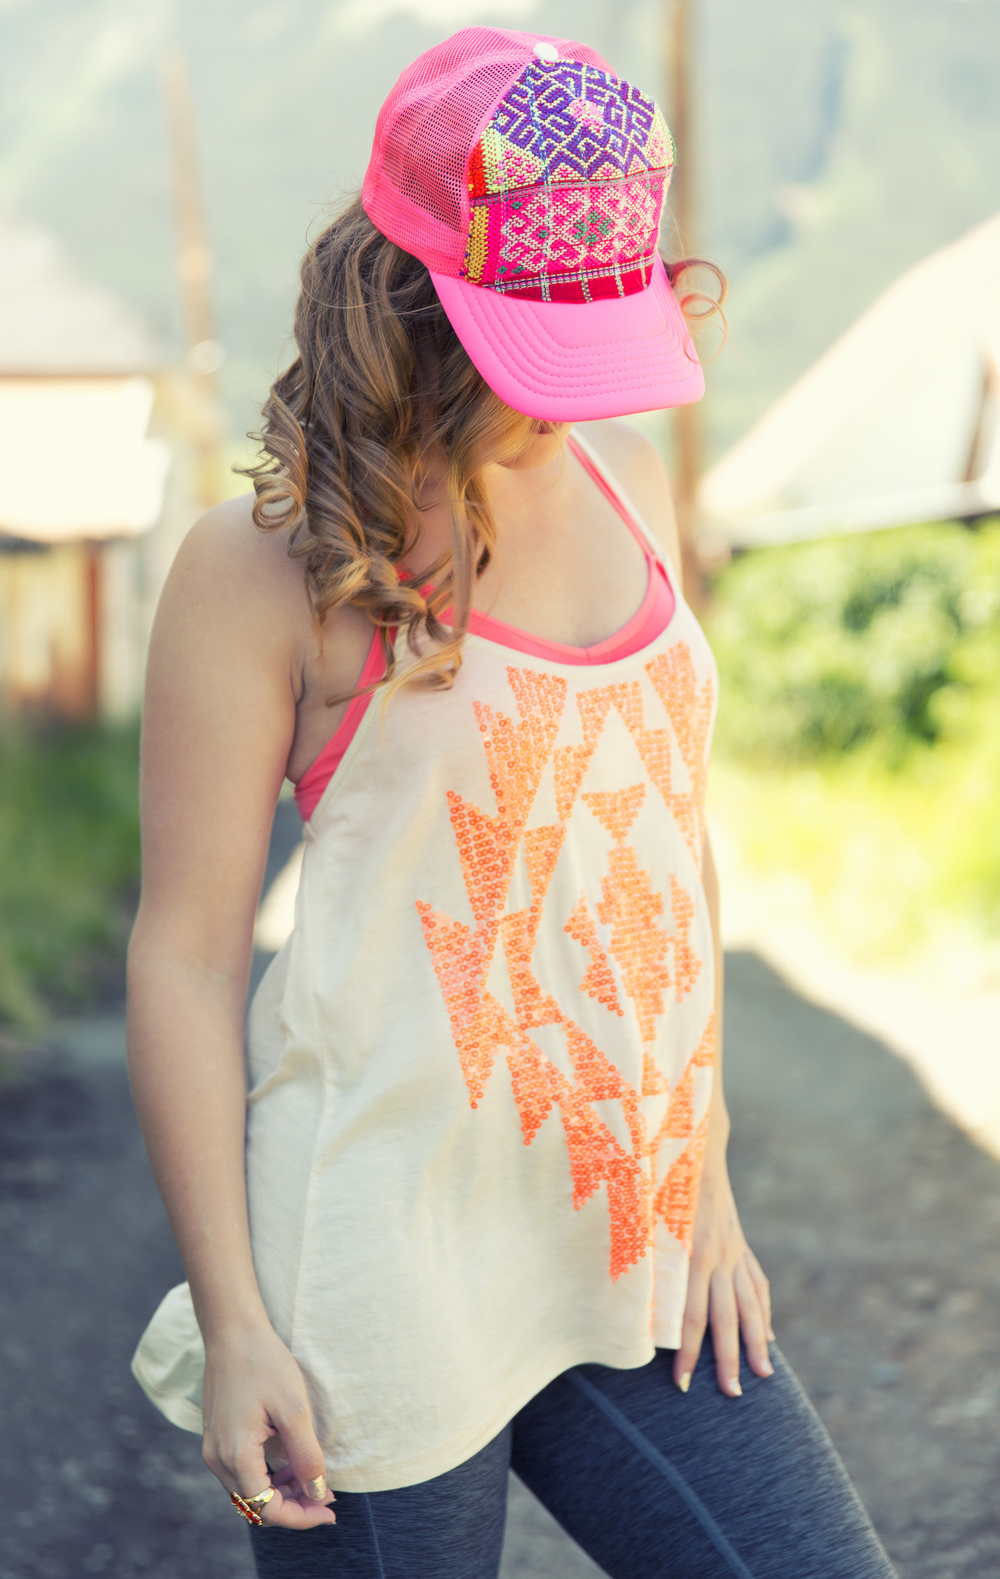 Aztec Top + Cute Hat - Photo by Katherine Accettura